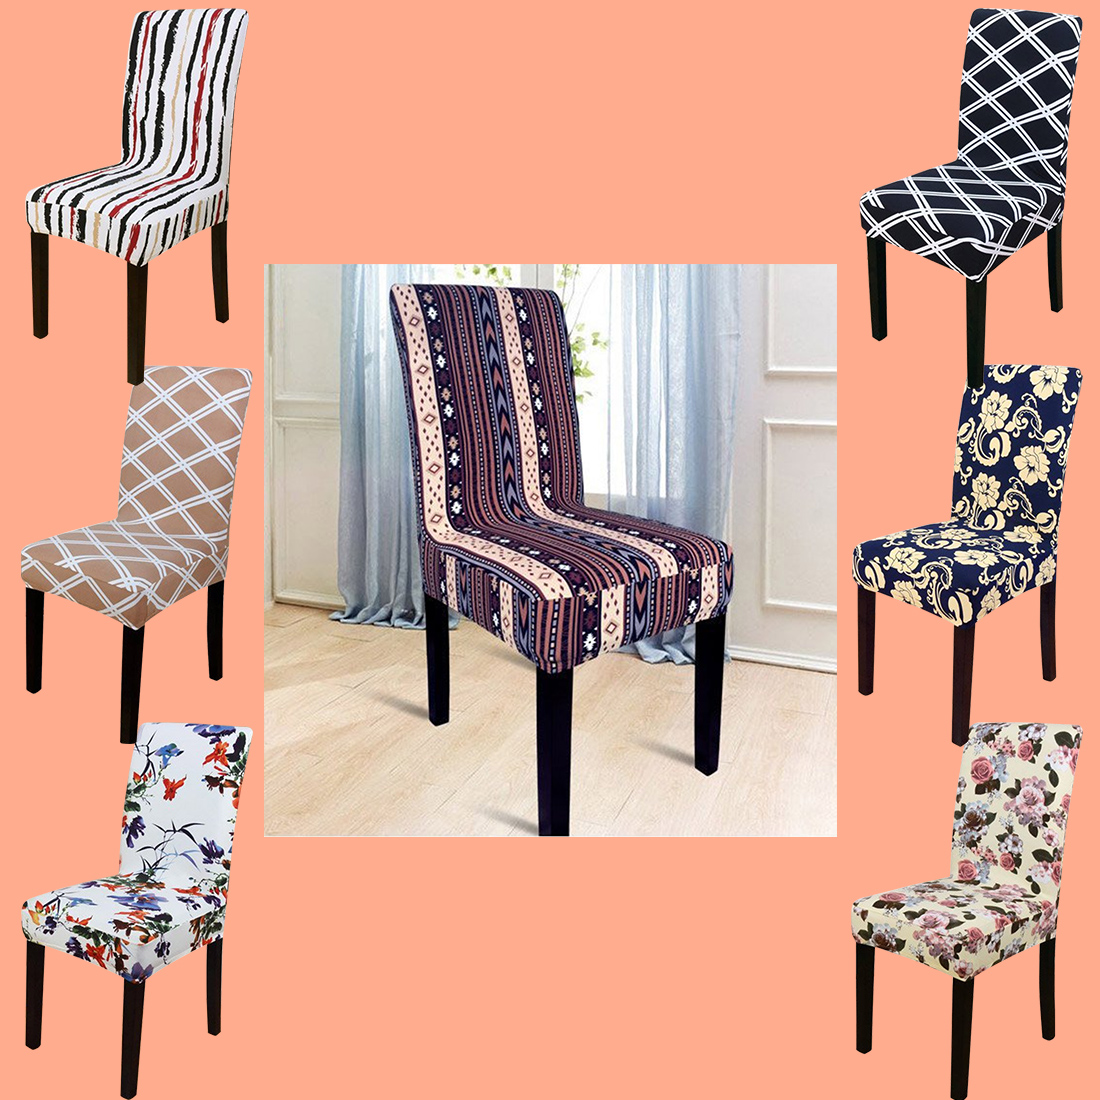 Free Shipping Home Decorators: 1Pc Free Shipping Stretch Home Decor Dining Chair Cover